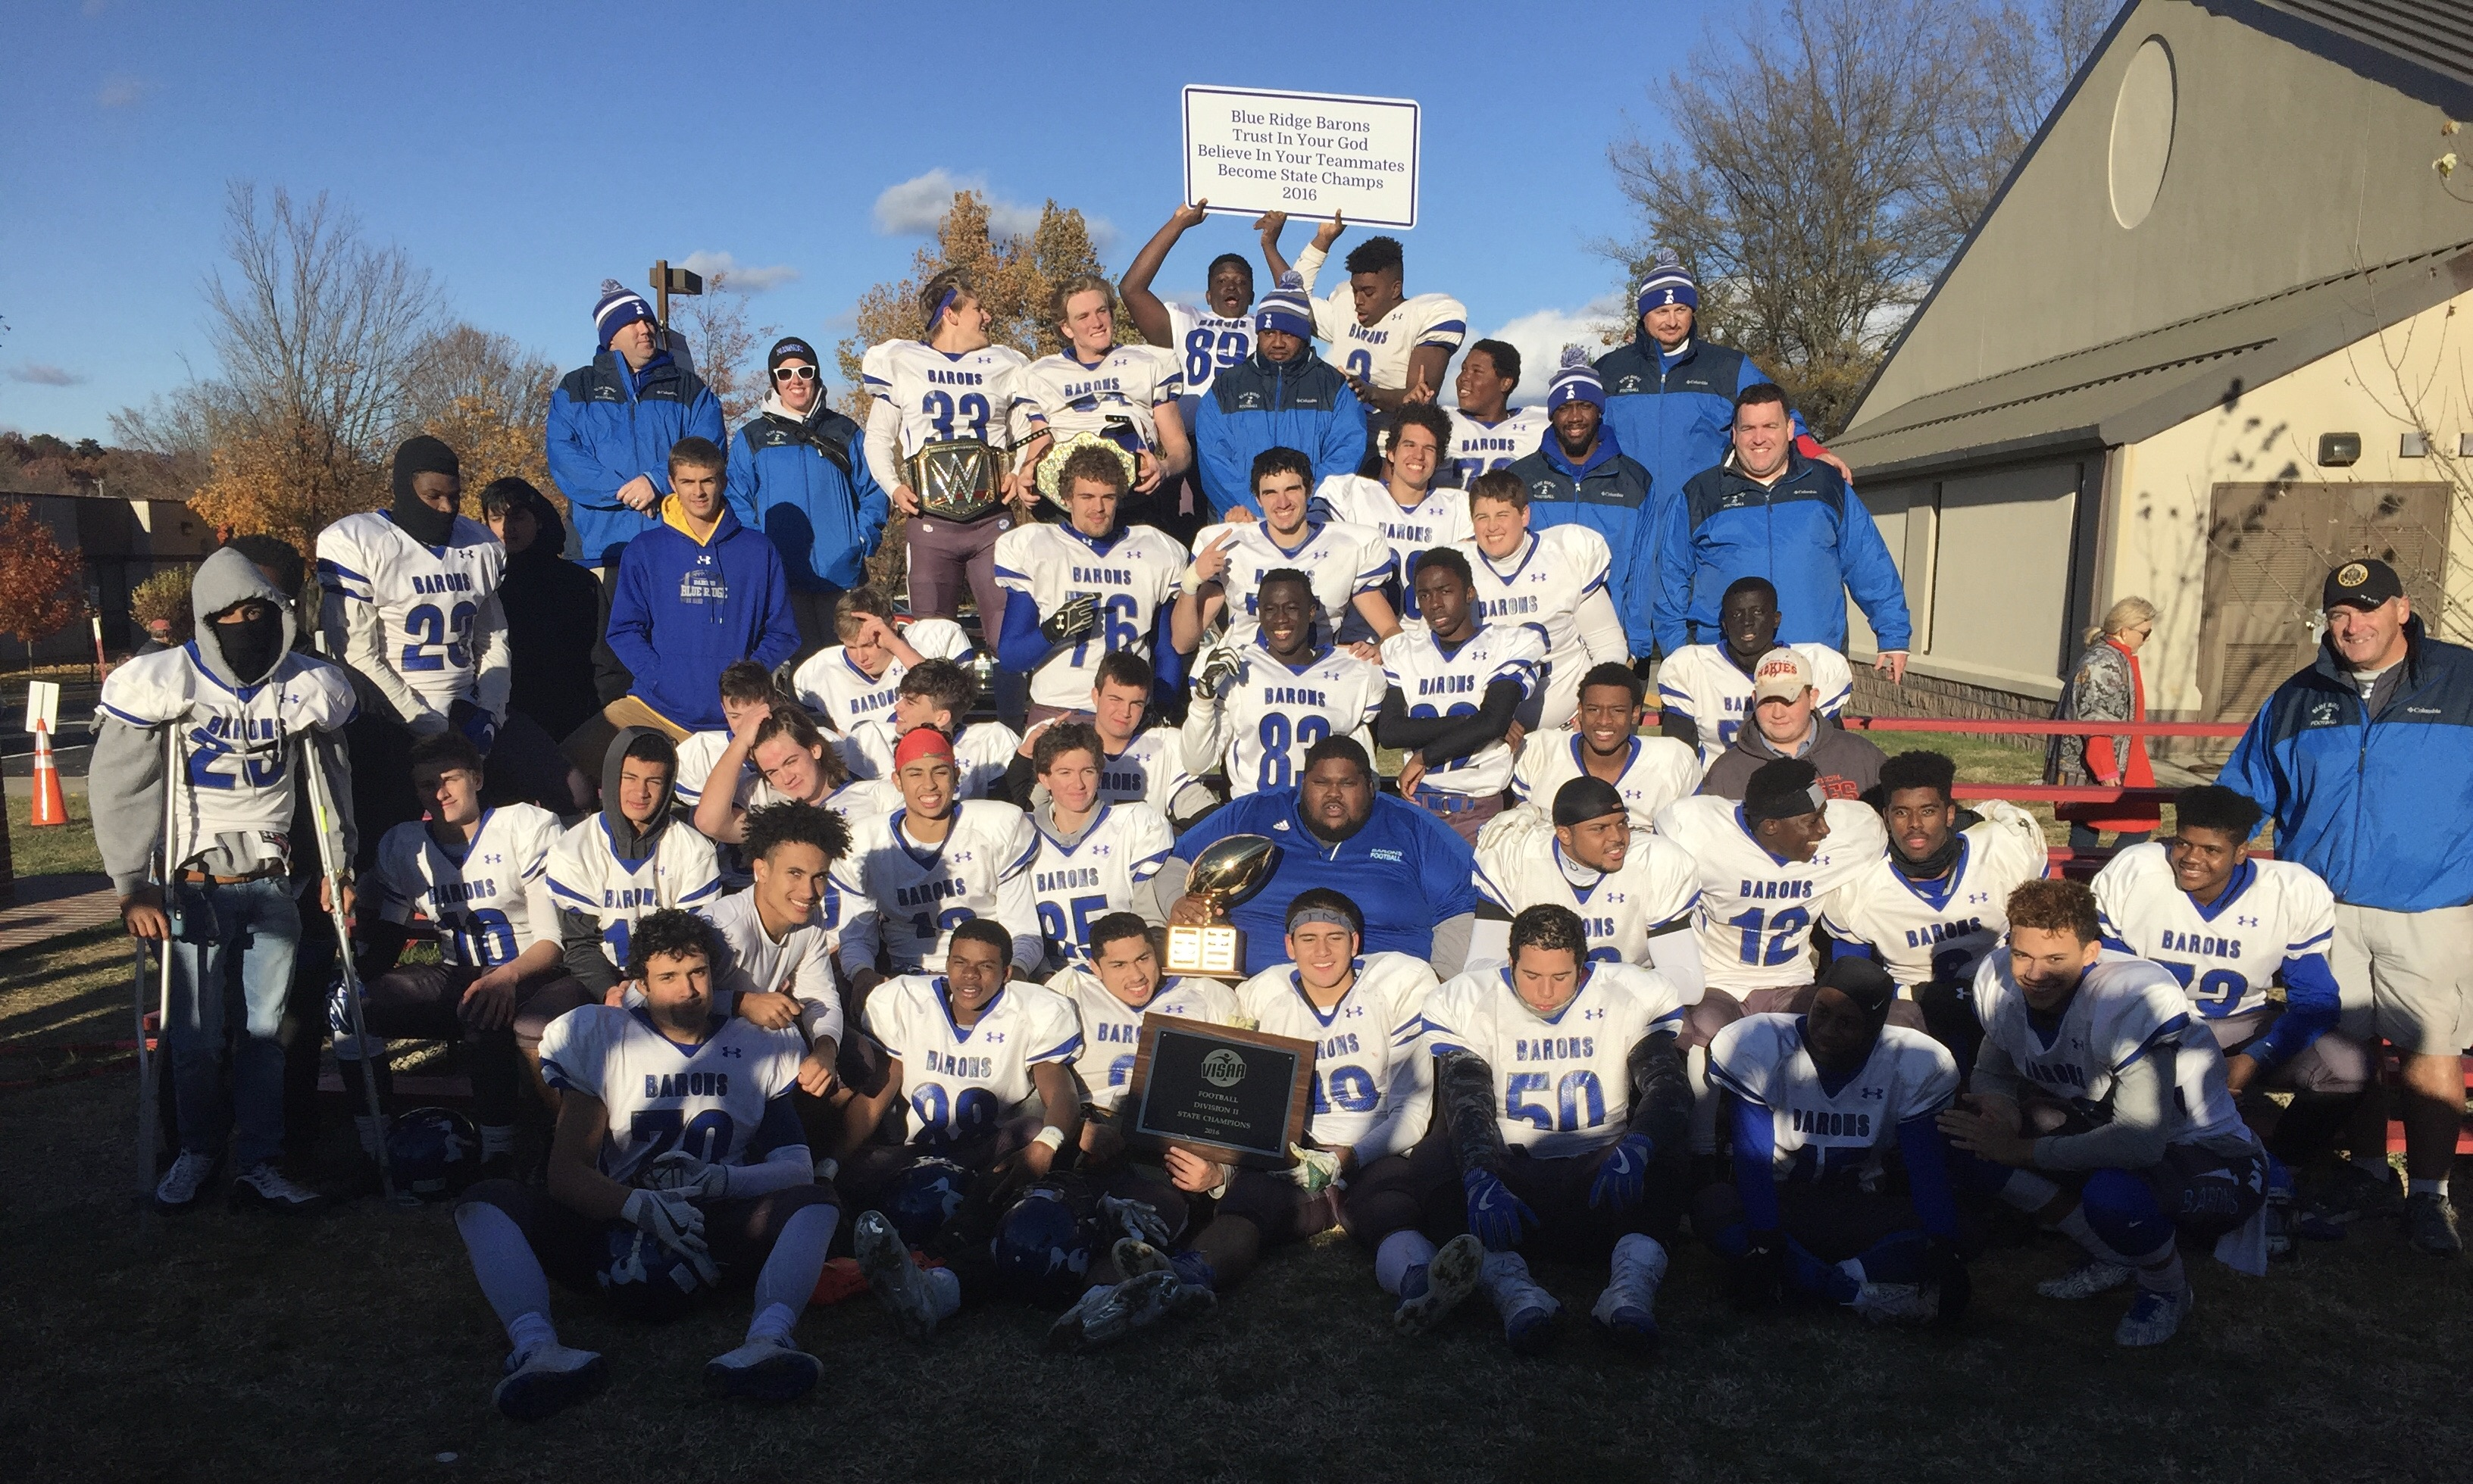 Back On Top: Blue Ridge surges past North Cross for state ...